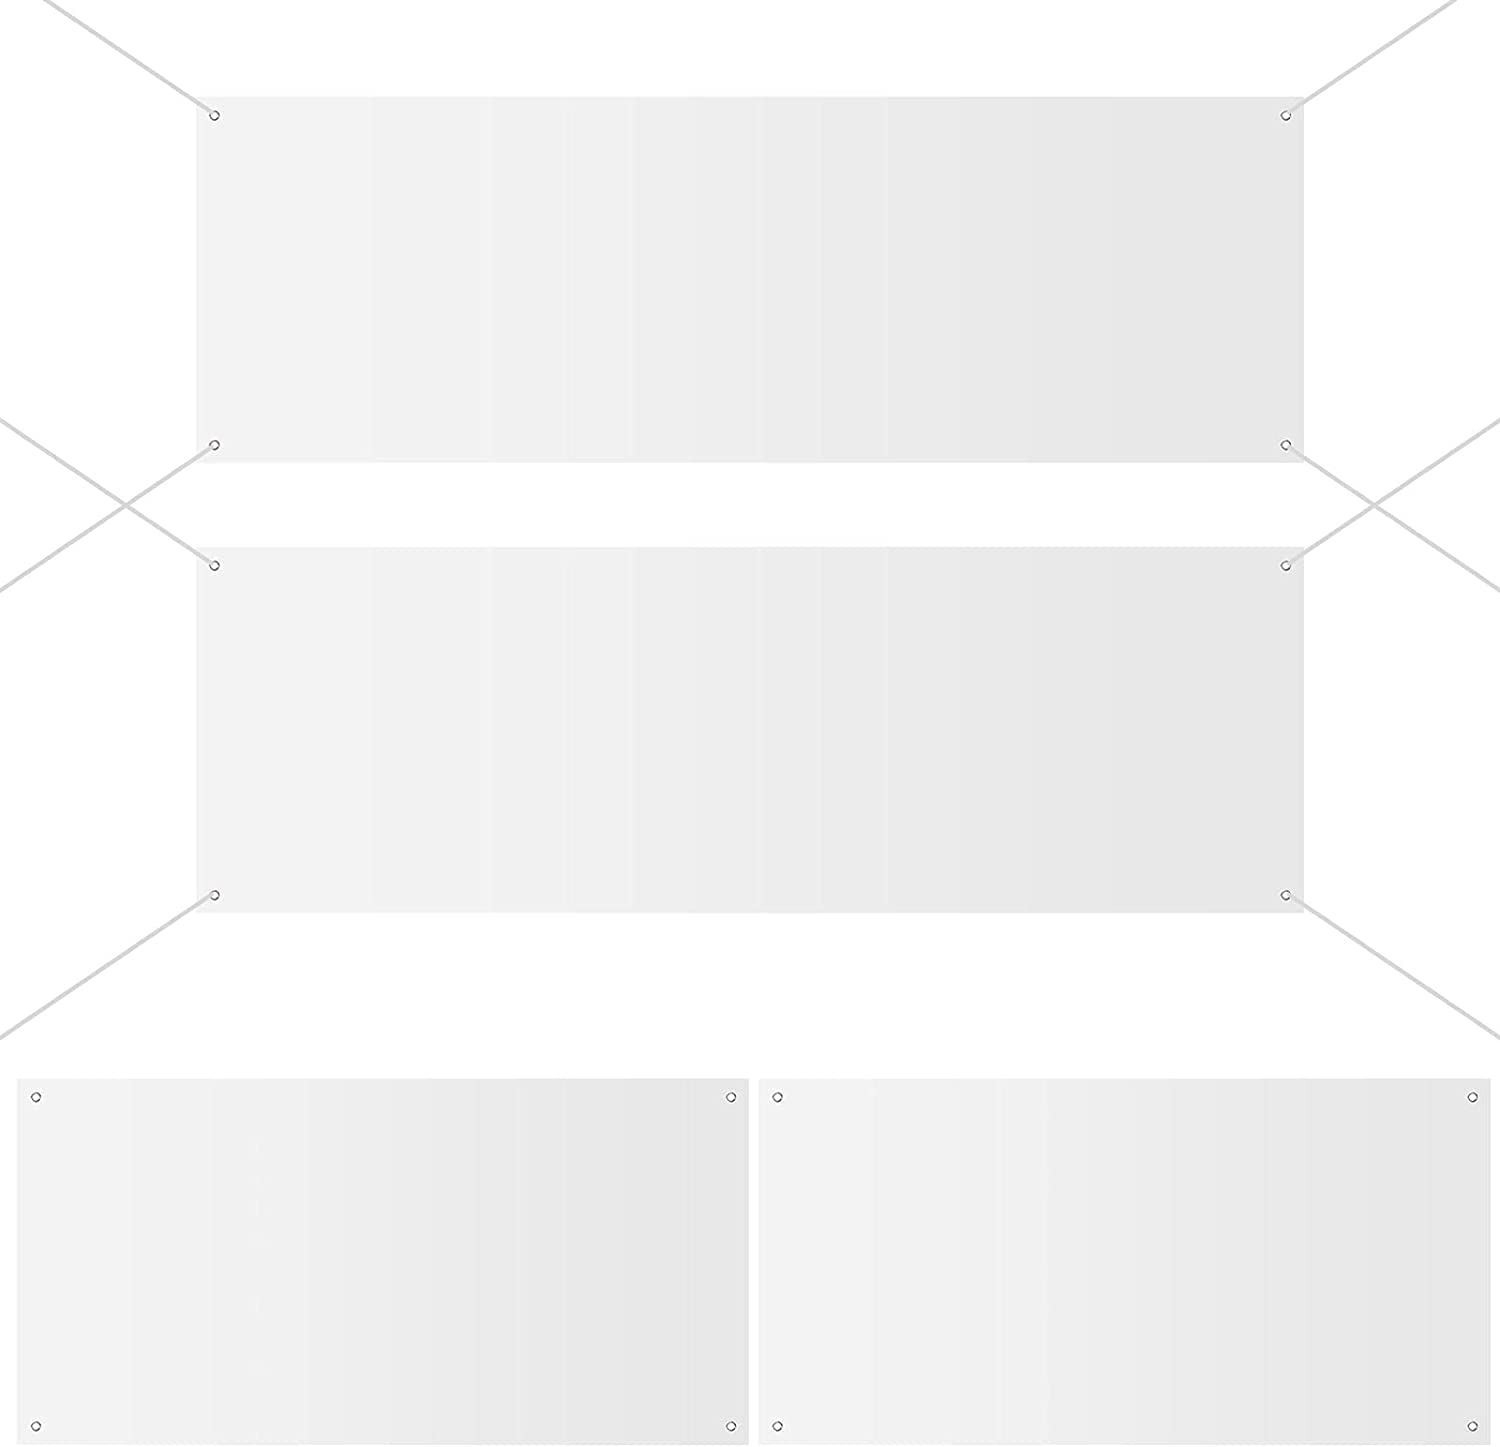 4 Pieces Large Blank Banner White Wall Banner Polyester Oxford Cloth Banner Outdoor Hanging Banner DIY Banner Signs with Hanging Rope for Indoor Outdoor Decor (2 x 4 Feet) (2 x 4 Feet, 2 x 6 Feet)